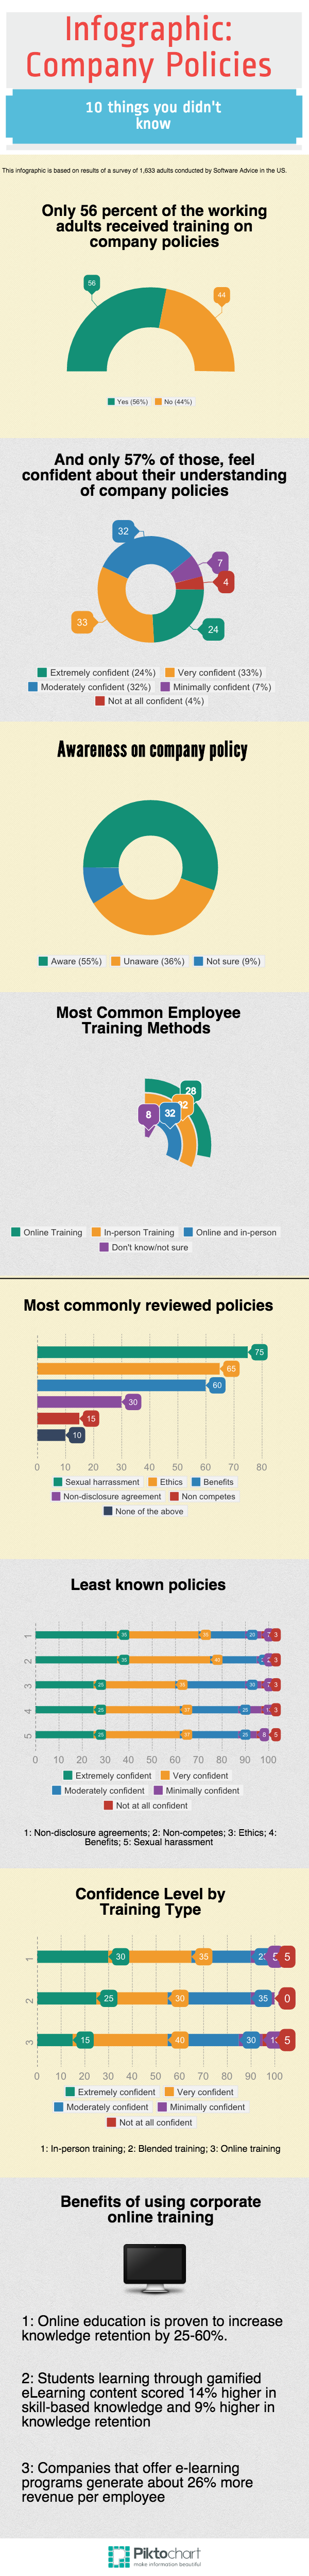 Employee Awareness Of Company Policies Infographic E Learning Infographics Educational Infographic Infographic Employee Training